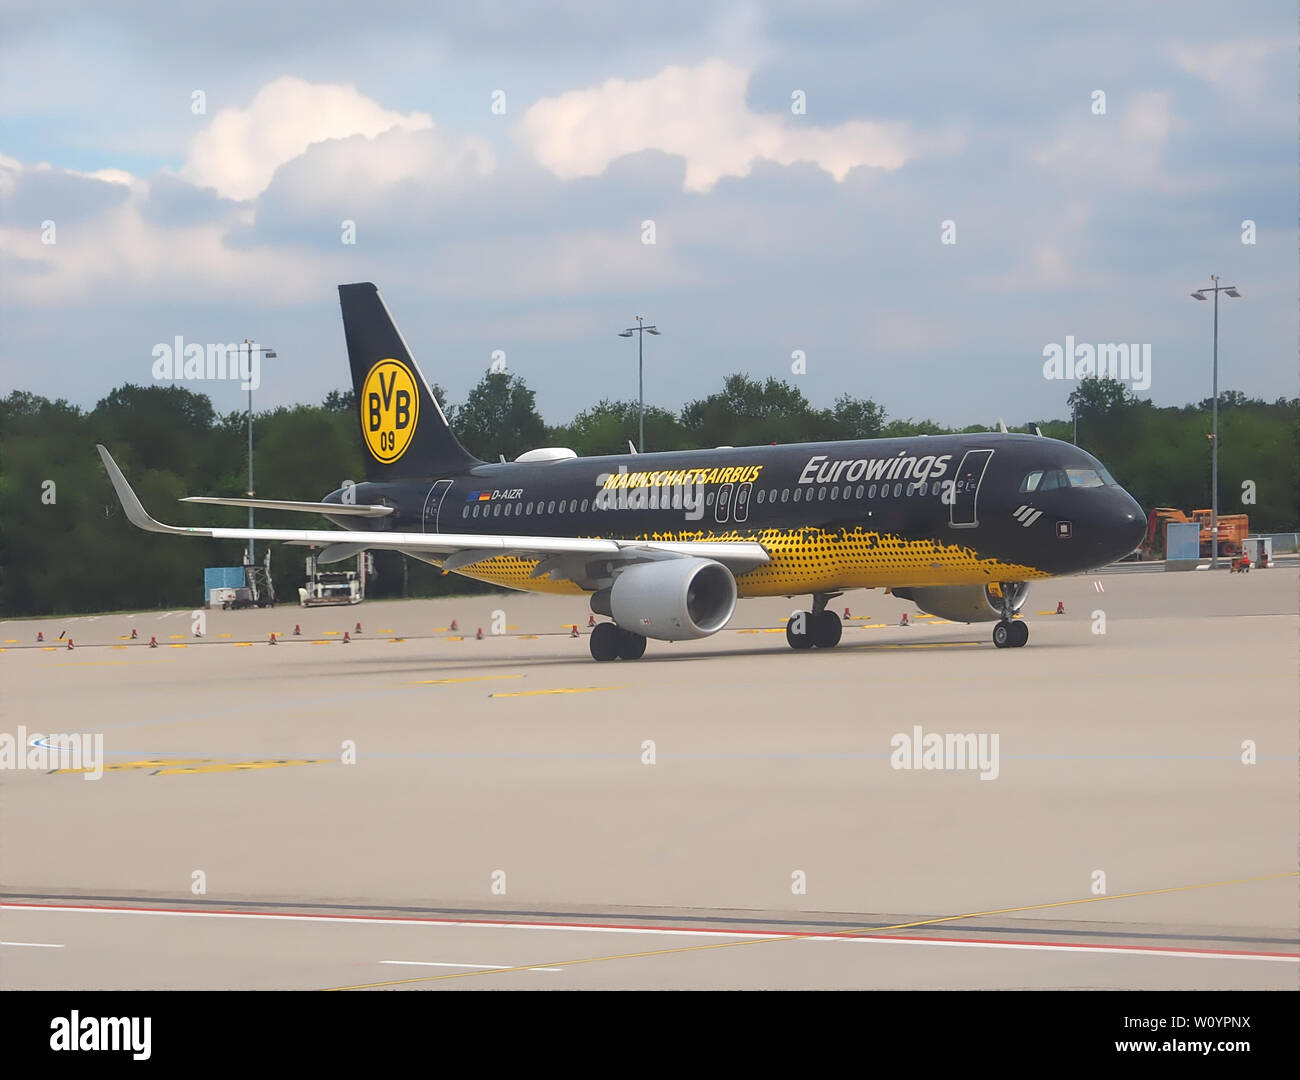 Team airbus or airplane of the BVB, a german soccer team from Dortmund - Stock Image